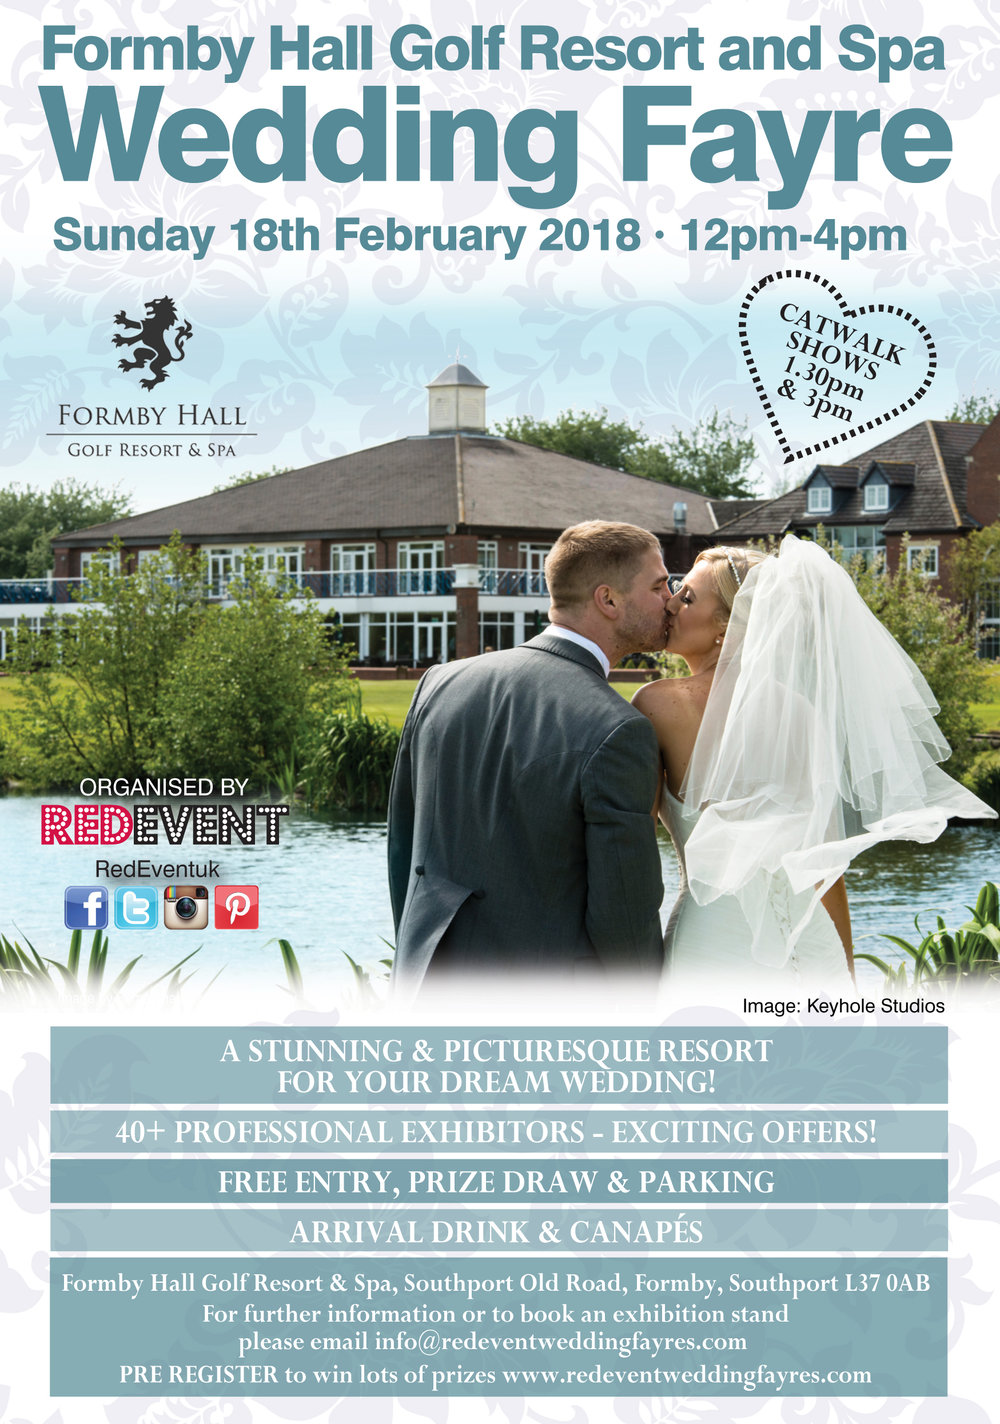 Formby Hall Golf Resort & Spa Wedding Fayre flyer.jpg